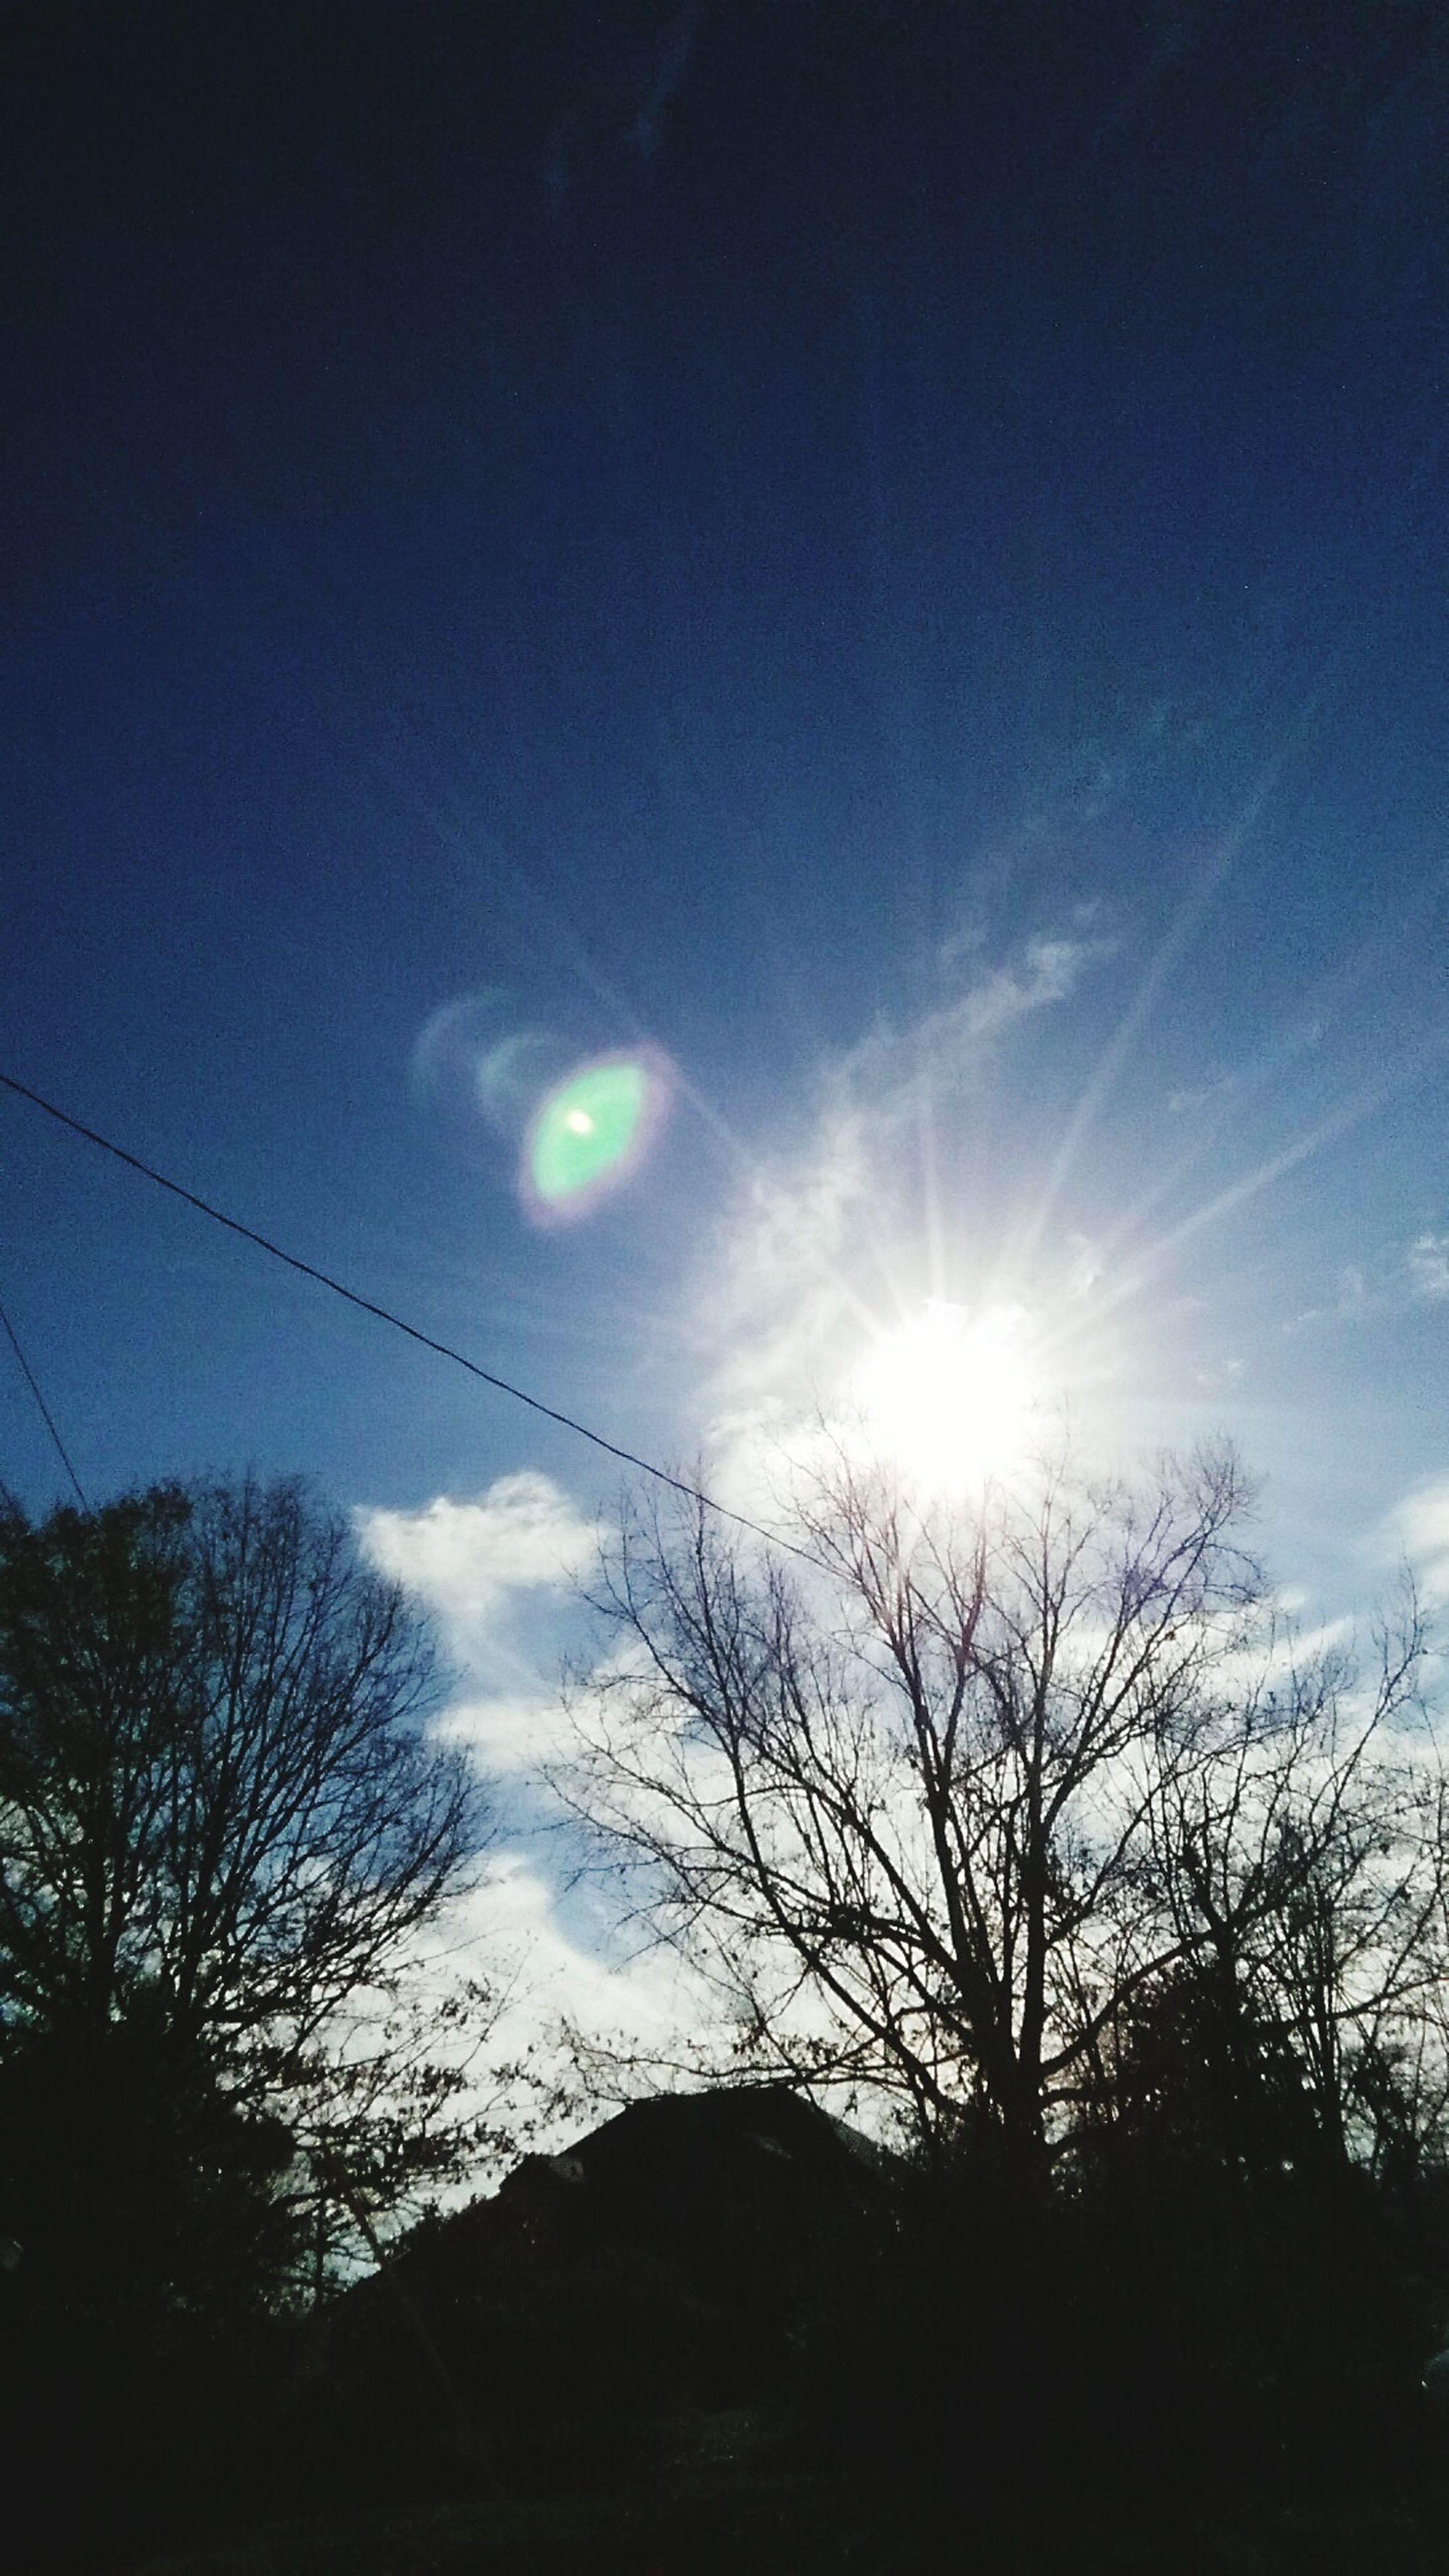 sun, silhouette, tree, sky, low angle view, sunbeam, tranquility, sunlight, beauty in nature, scenics, tranquil scene, nature, lens flare, bare tree, blue, cloud - sky, branch, vapor trail, outdoors, bright